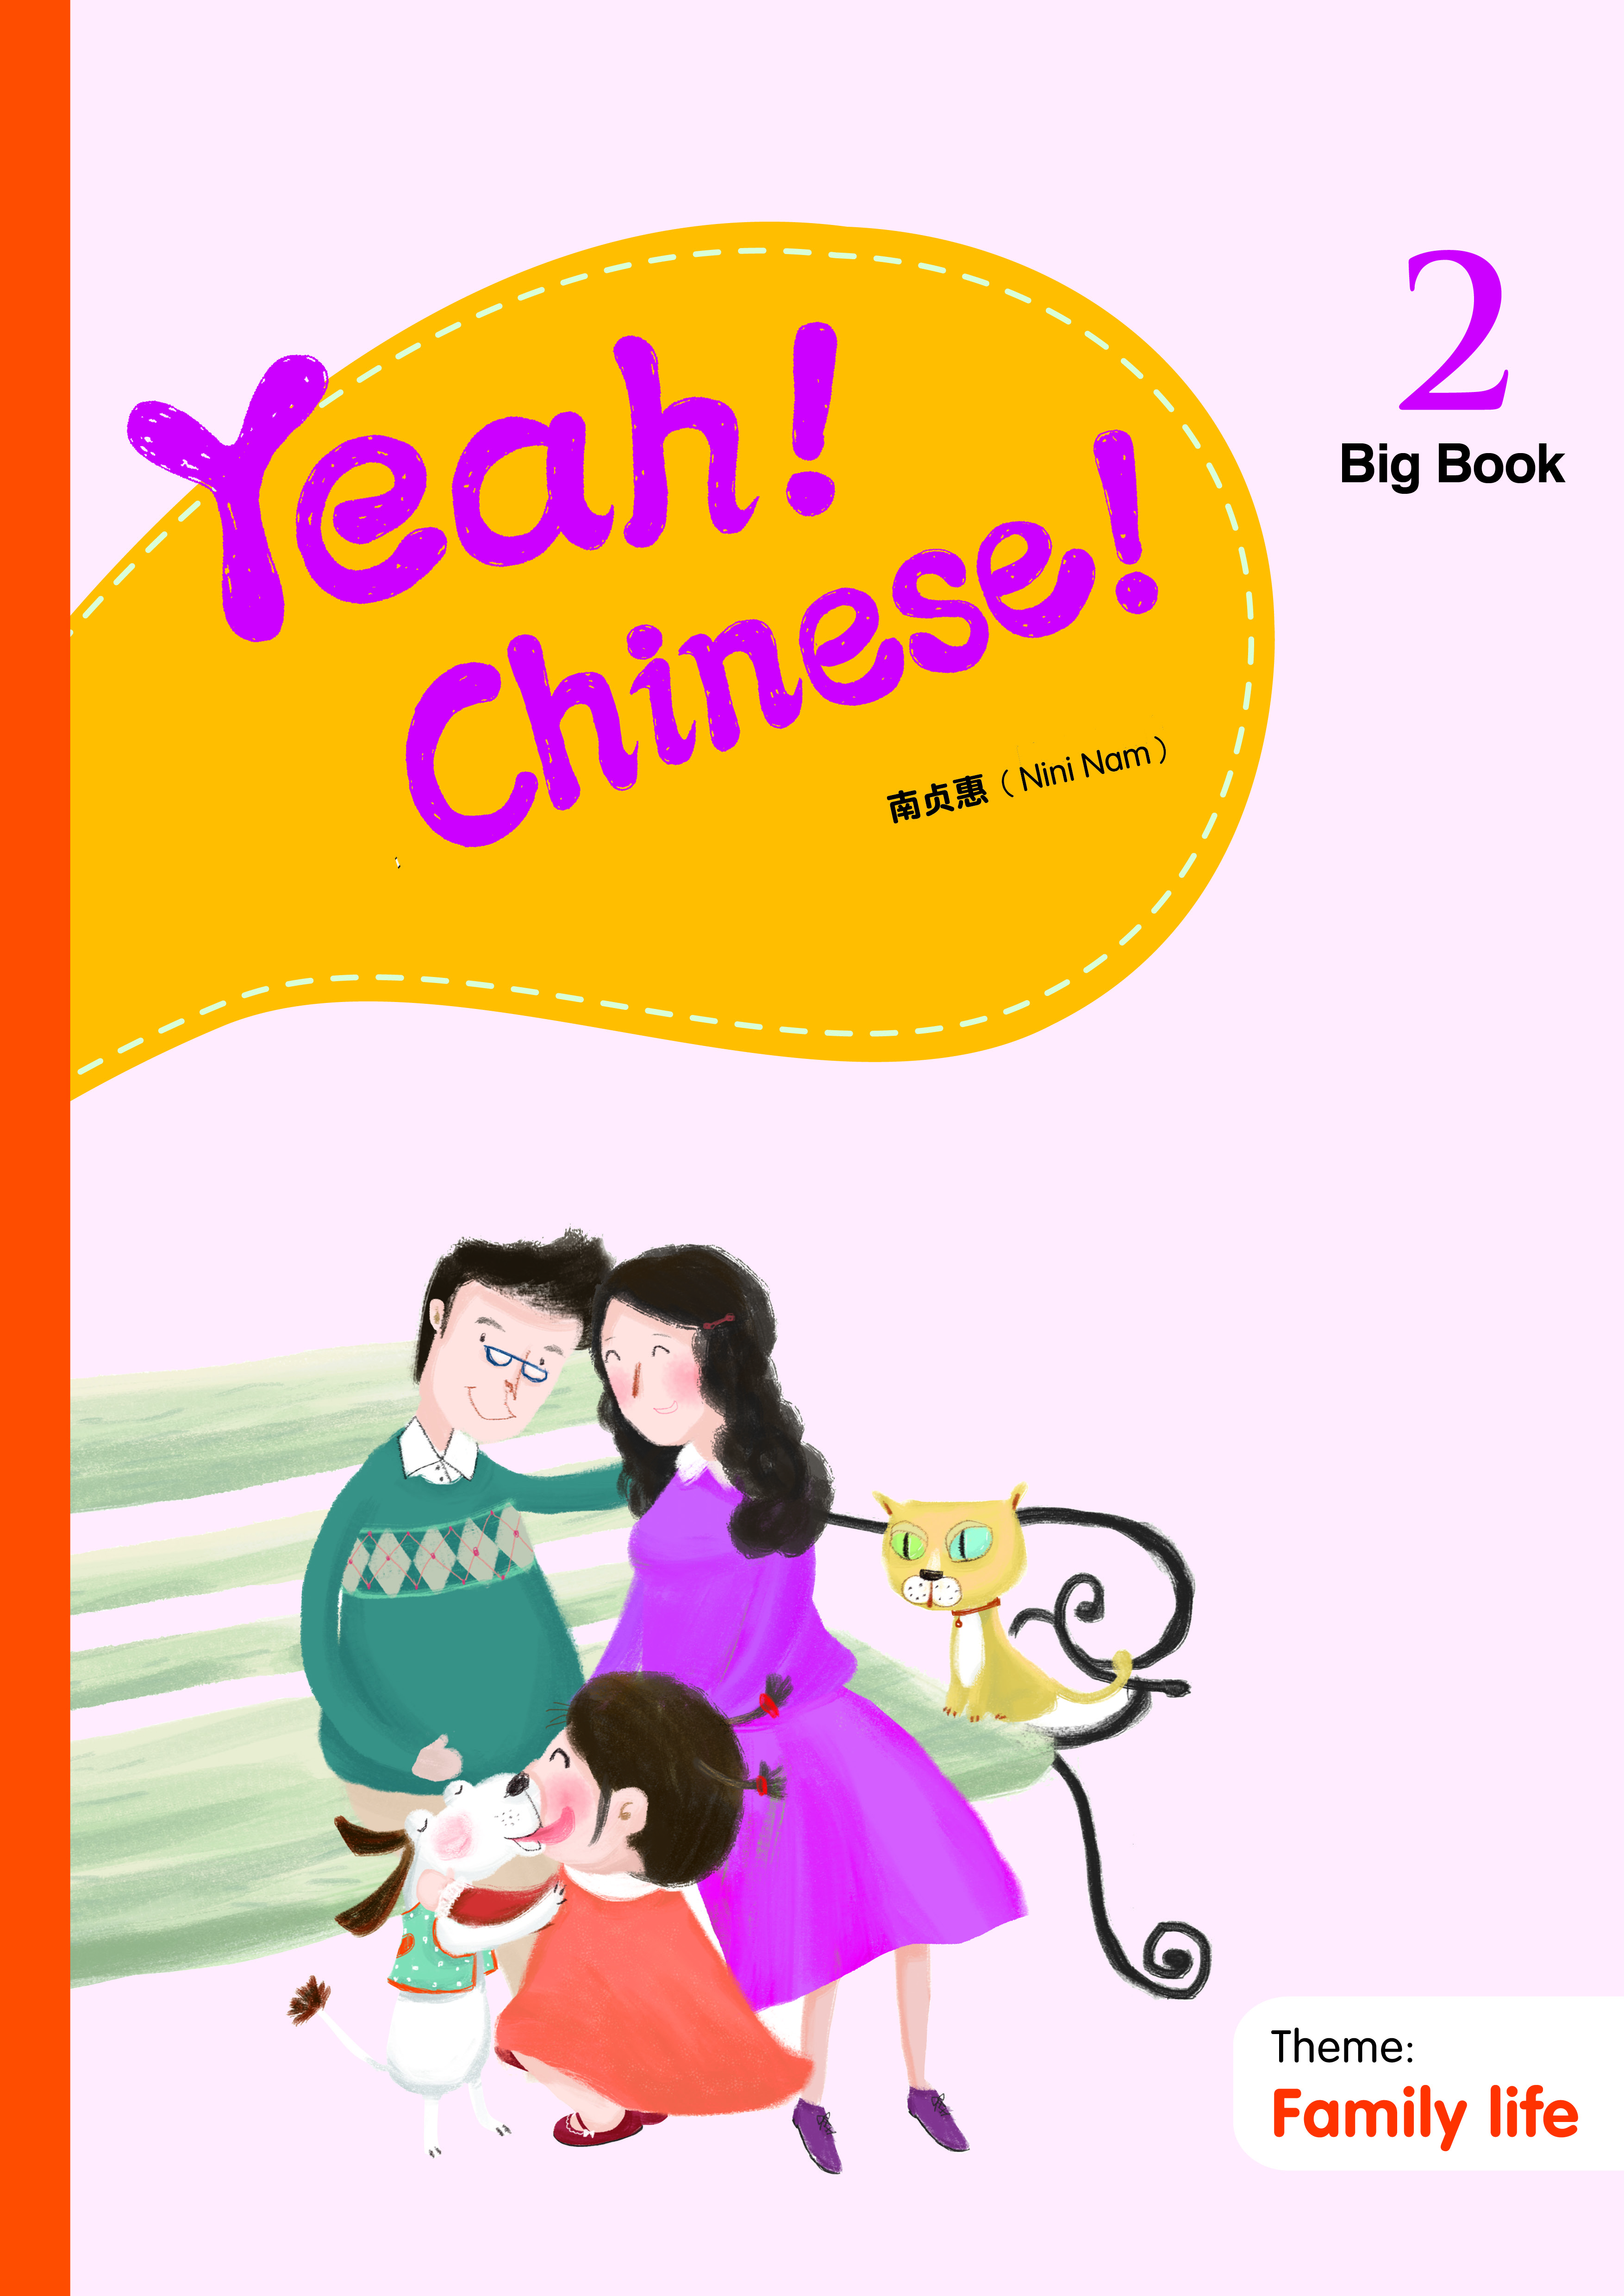 Yeah! Chinese! Big Book 2